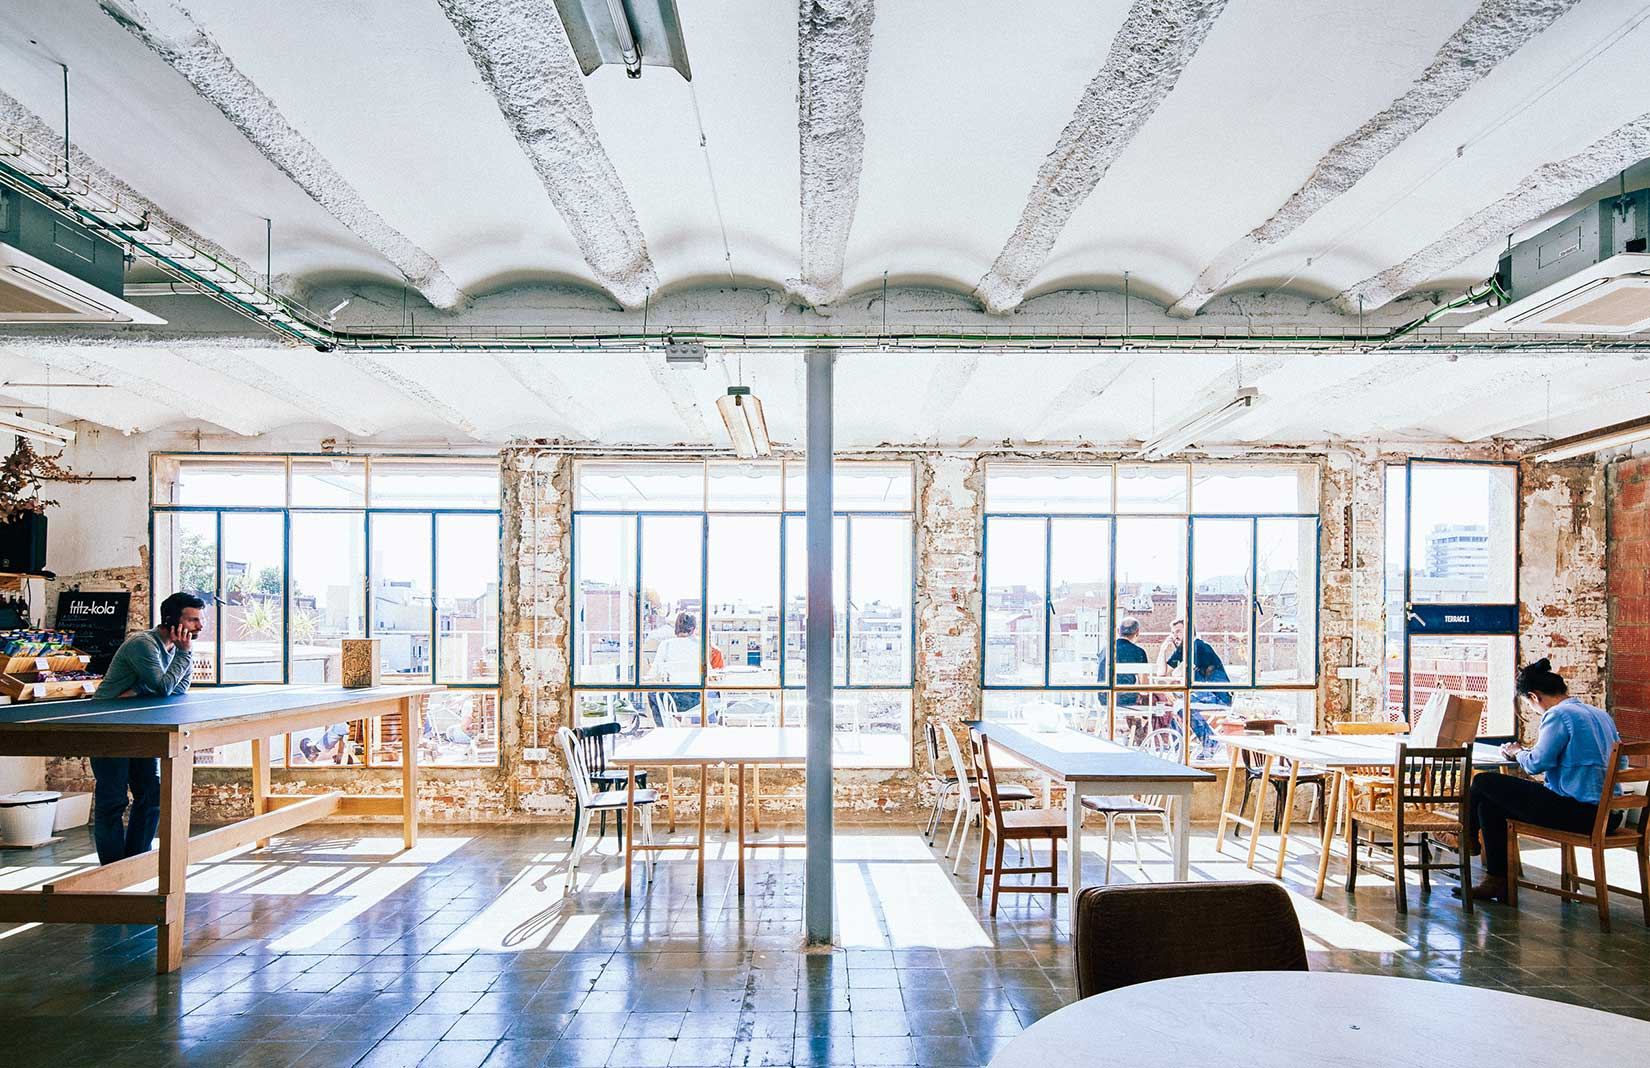 Barcelona coworking space, Betahaus